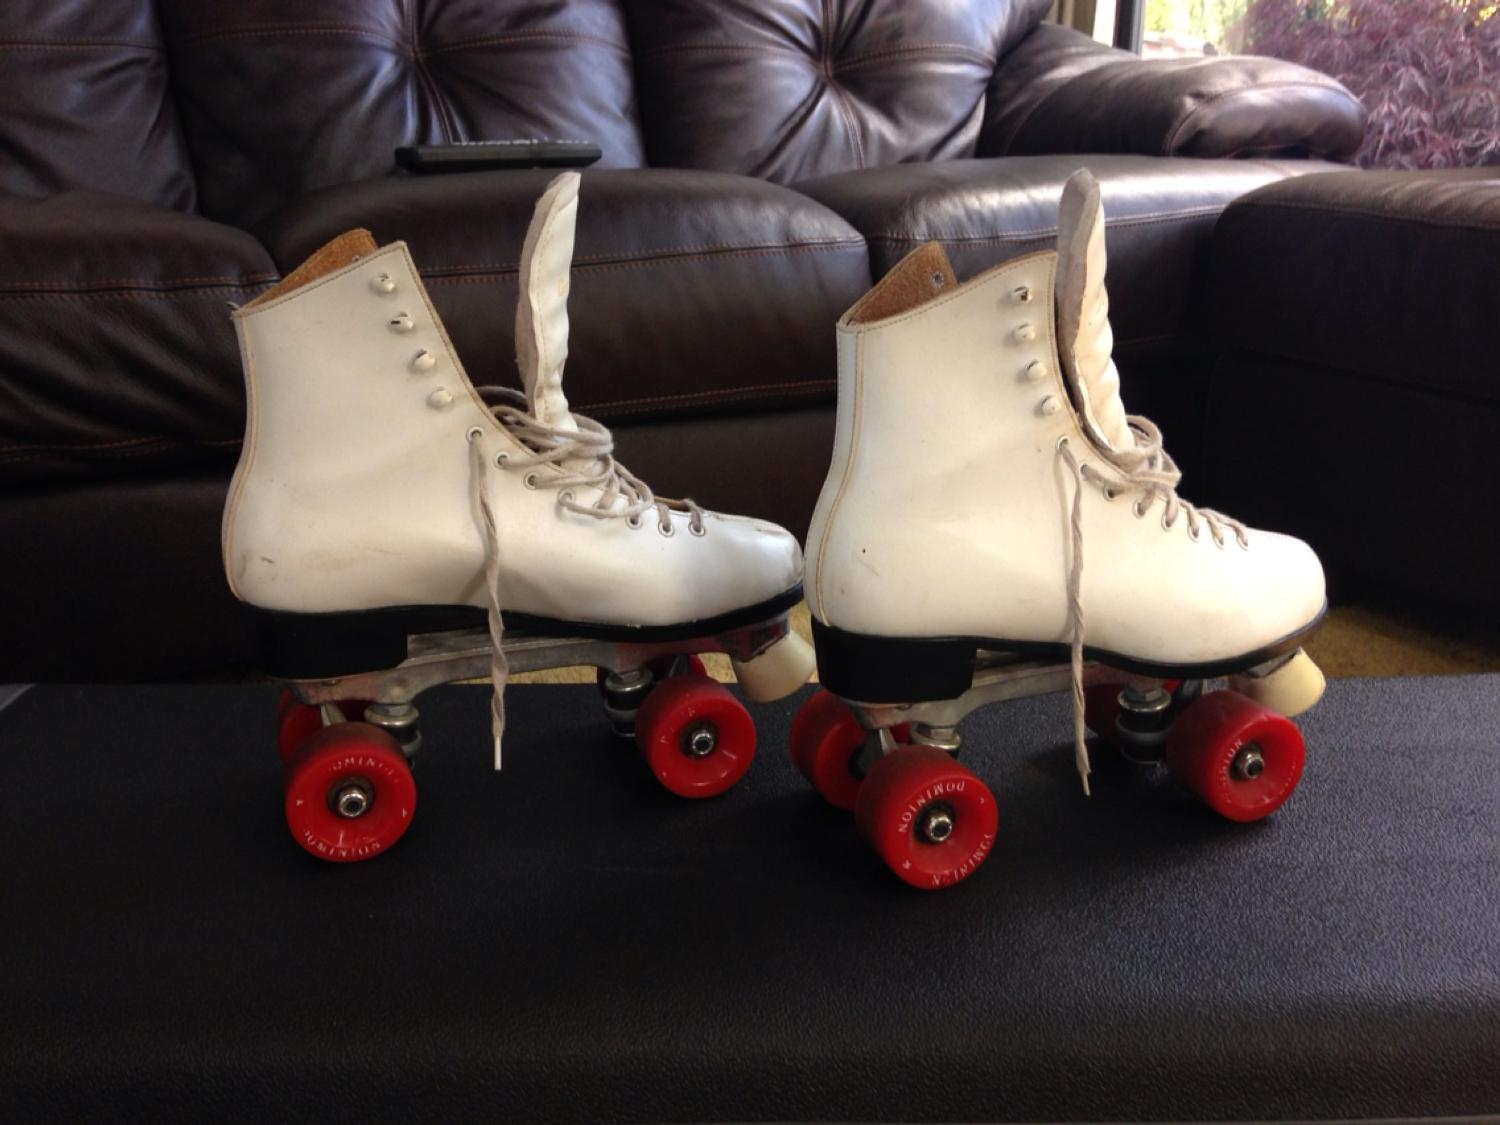 Roller skates dominion